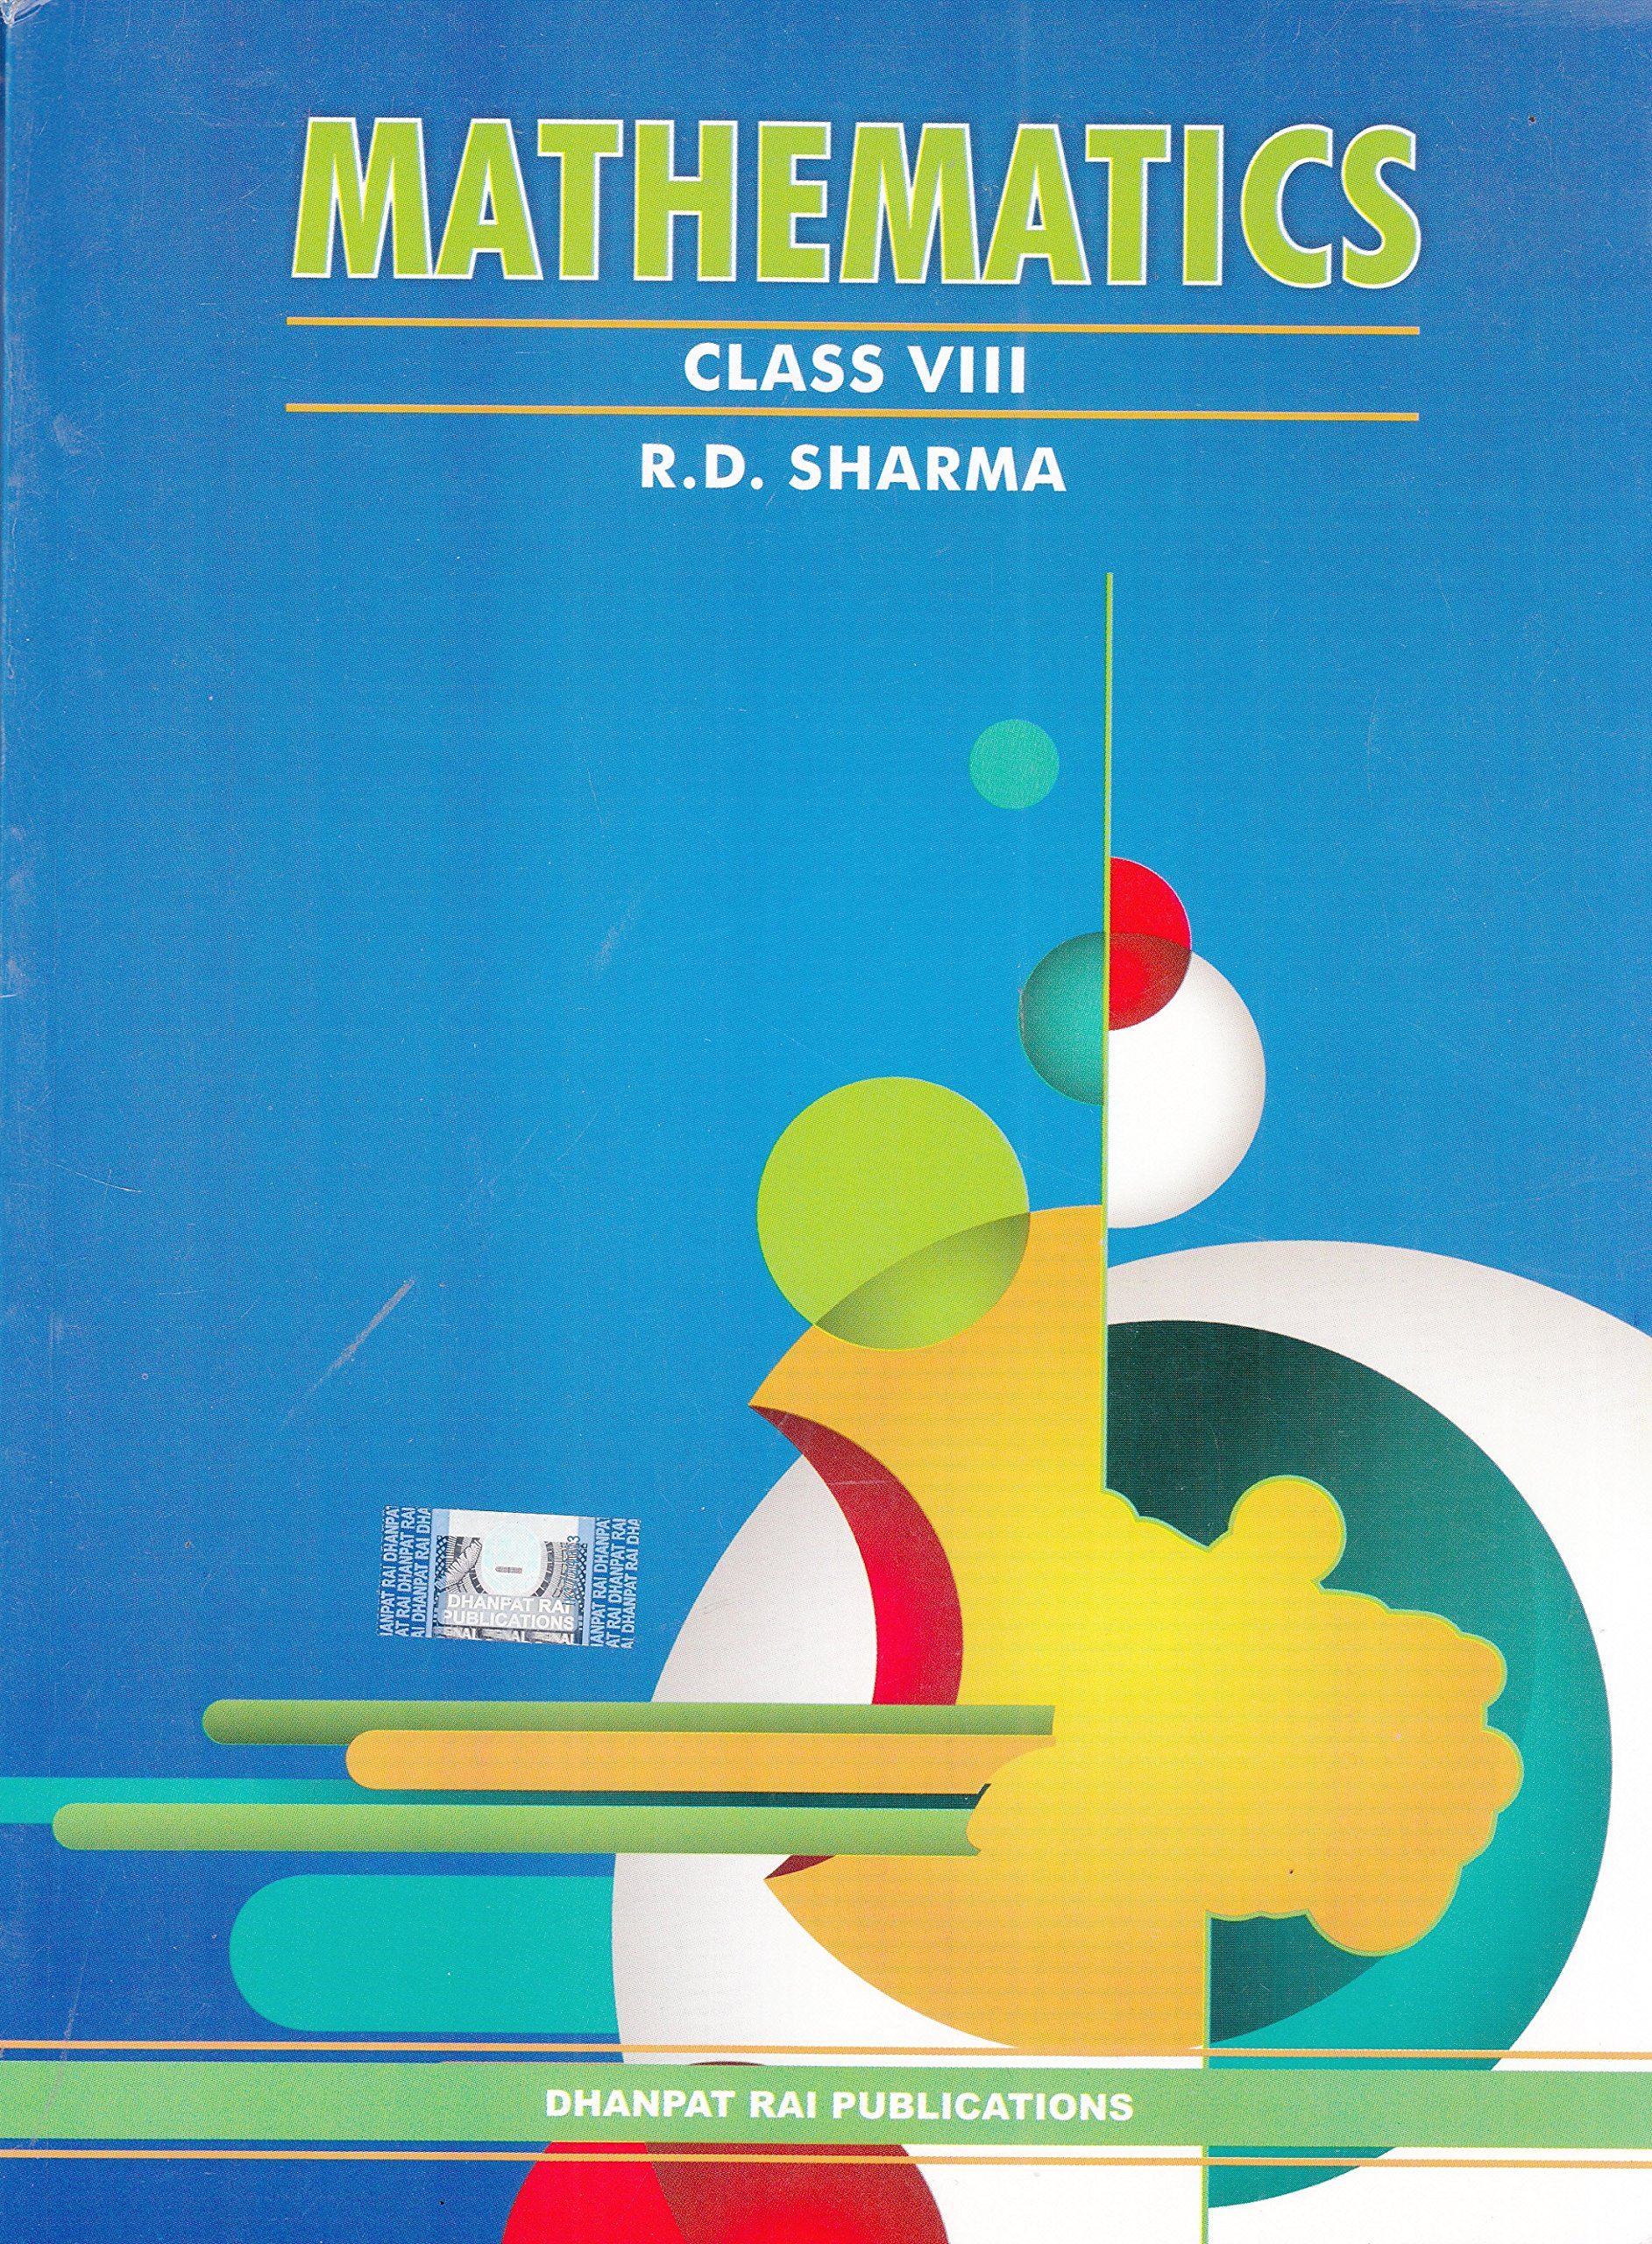 Mathematics For Class 8 by R D Sharma 2018-19 Session: Amazon.in ...